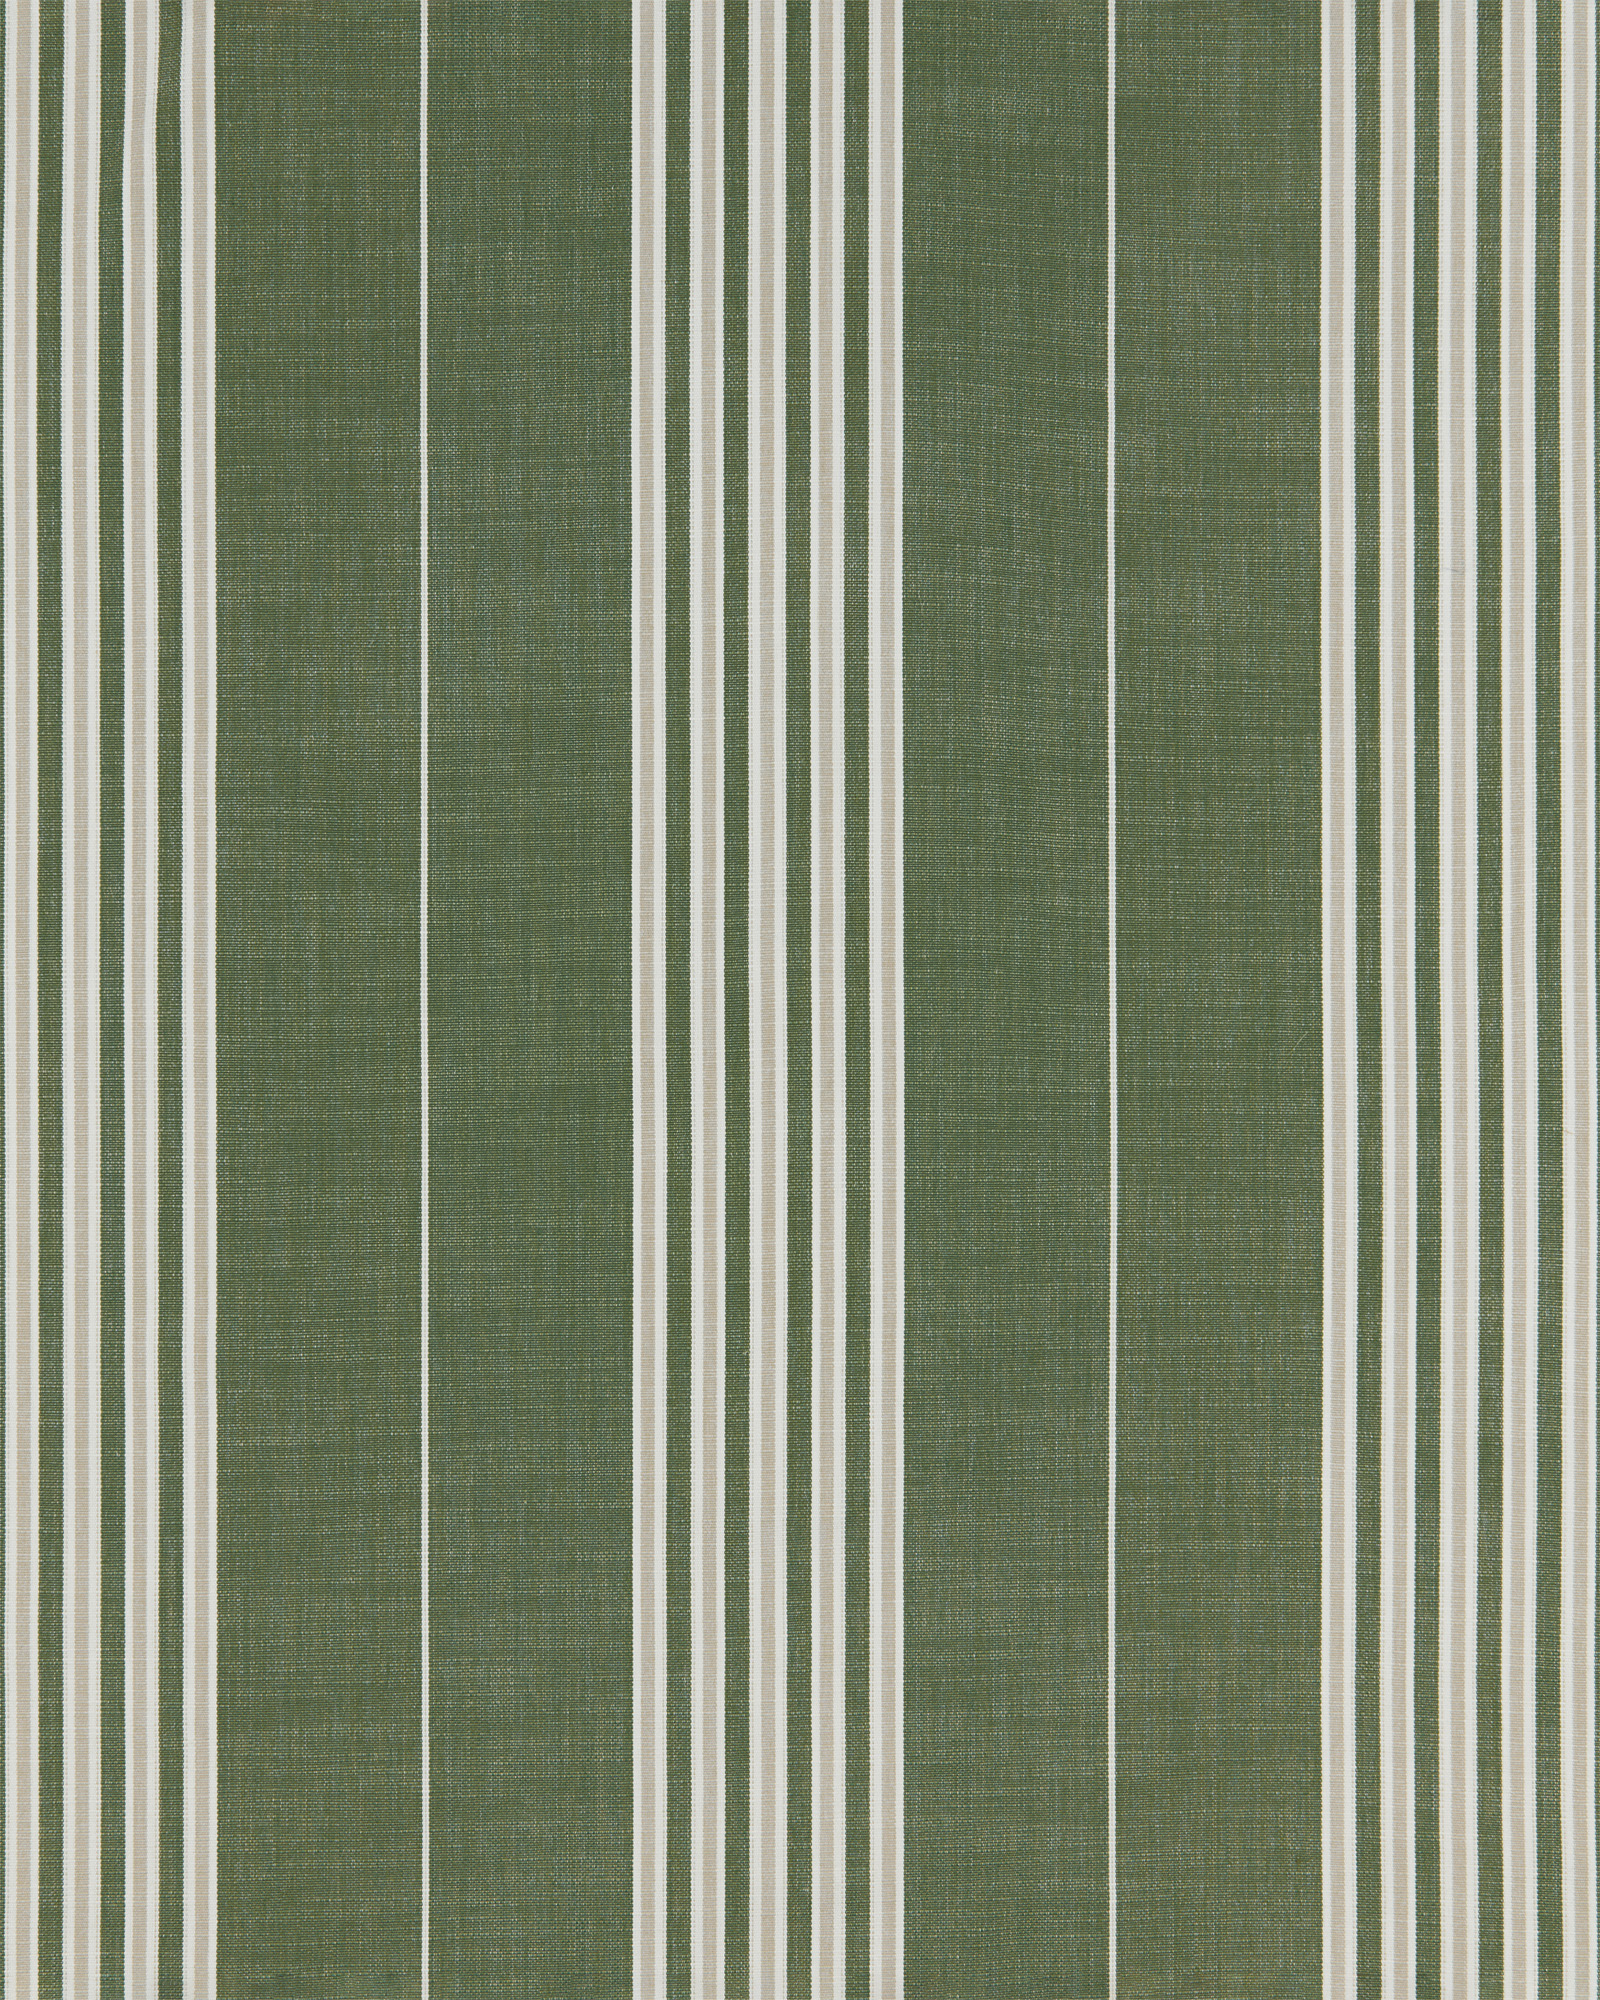 Perennials® Lake Stripe - Moss/Sand,